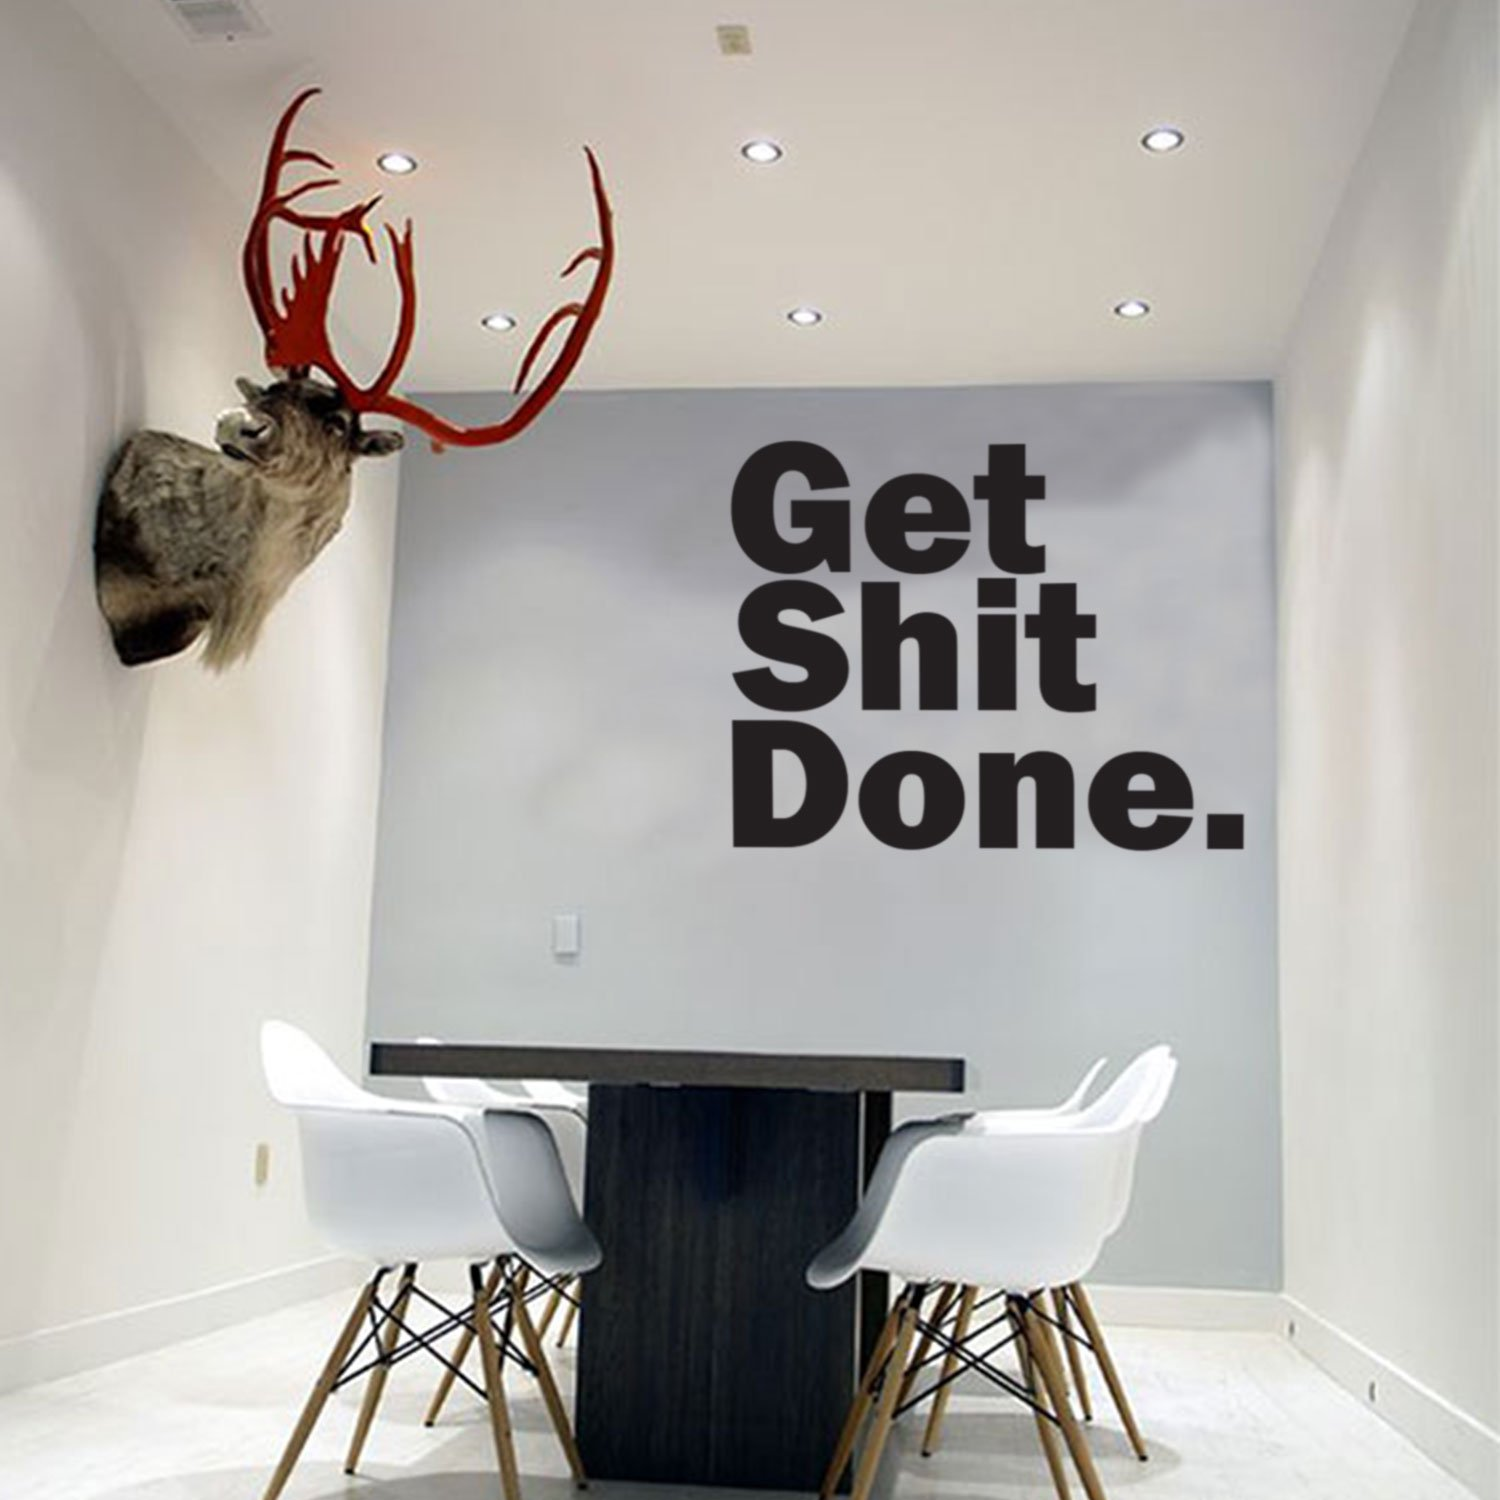 Motivational Art Decal/Get Shit Done Wall Text Decoration Vinyl Sticker- Black